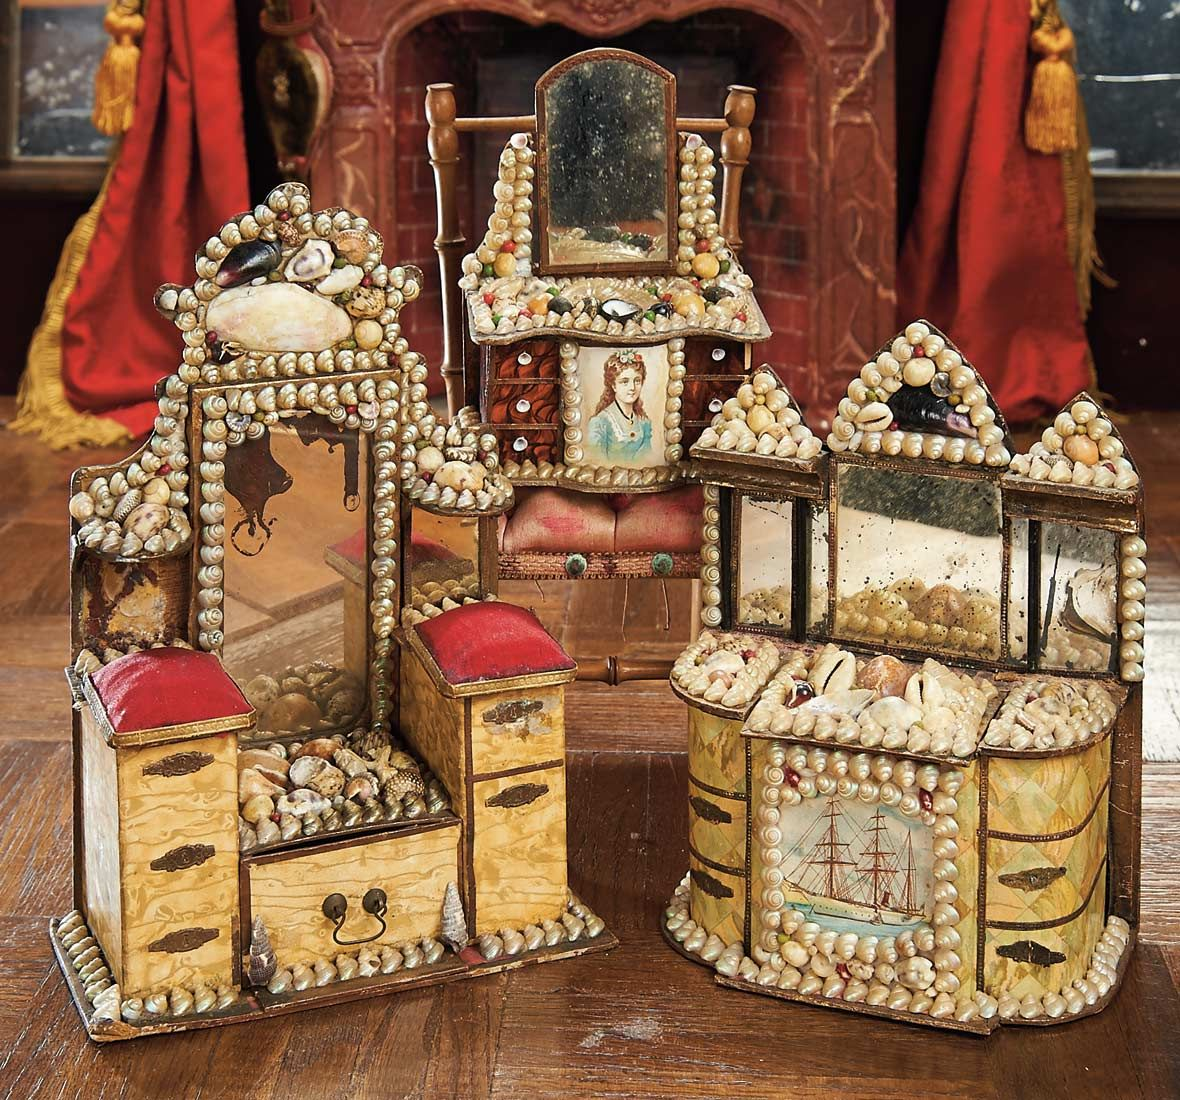 In the Company of the Gentleman Bespoken: 276 French 19th-Century Seashell-Art Candy Containers